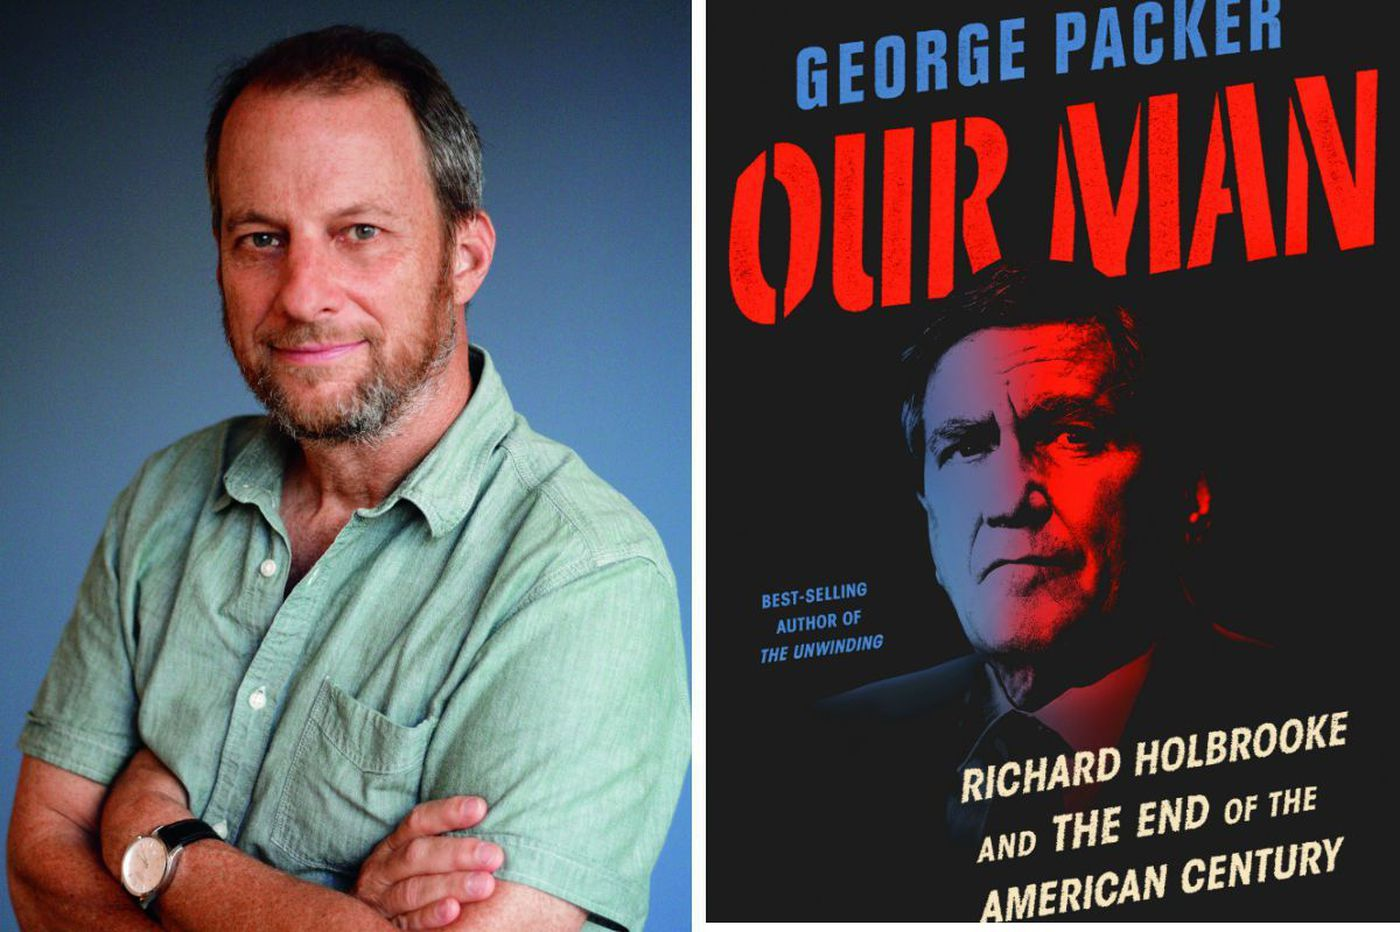 'Our Man' by George Packer: The toxic American tragedy of Richard Holbrooke